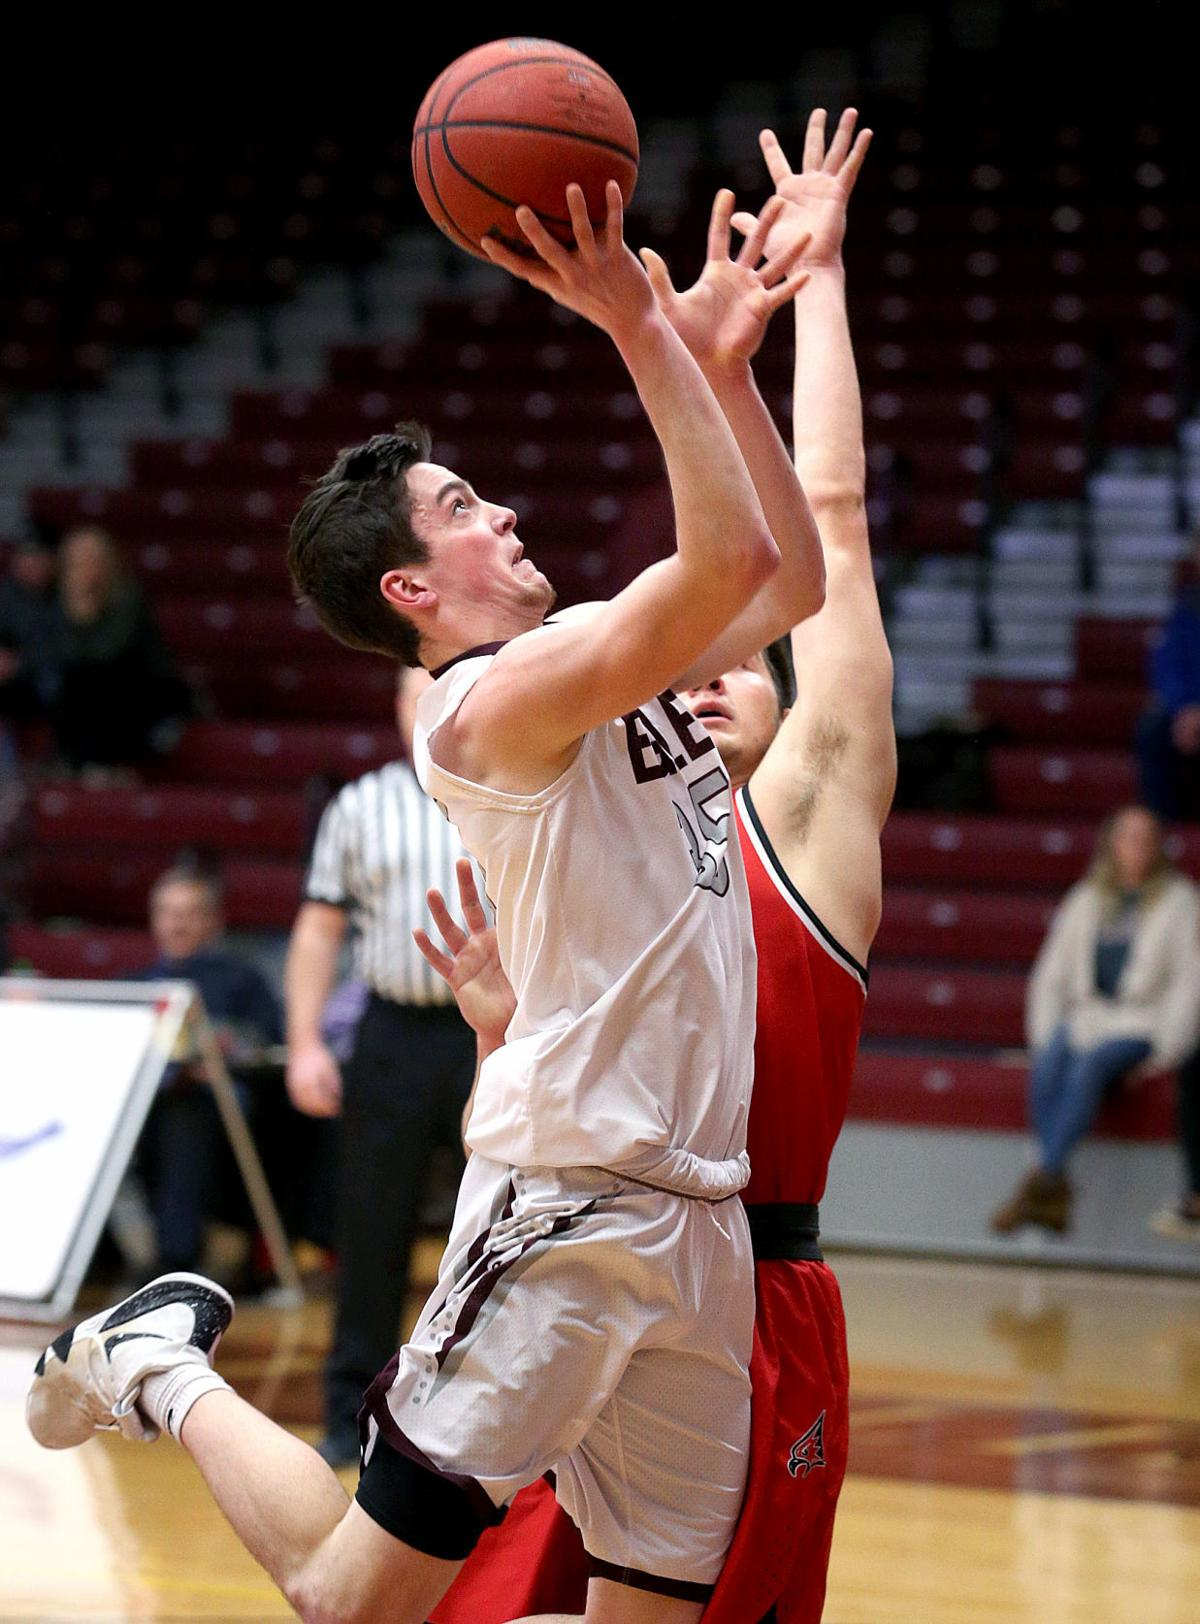 UW-La Crosse Men's Basketball